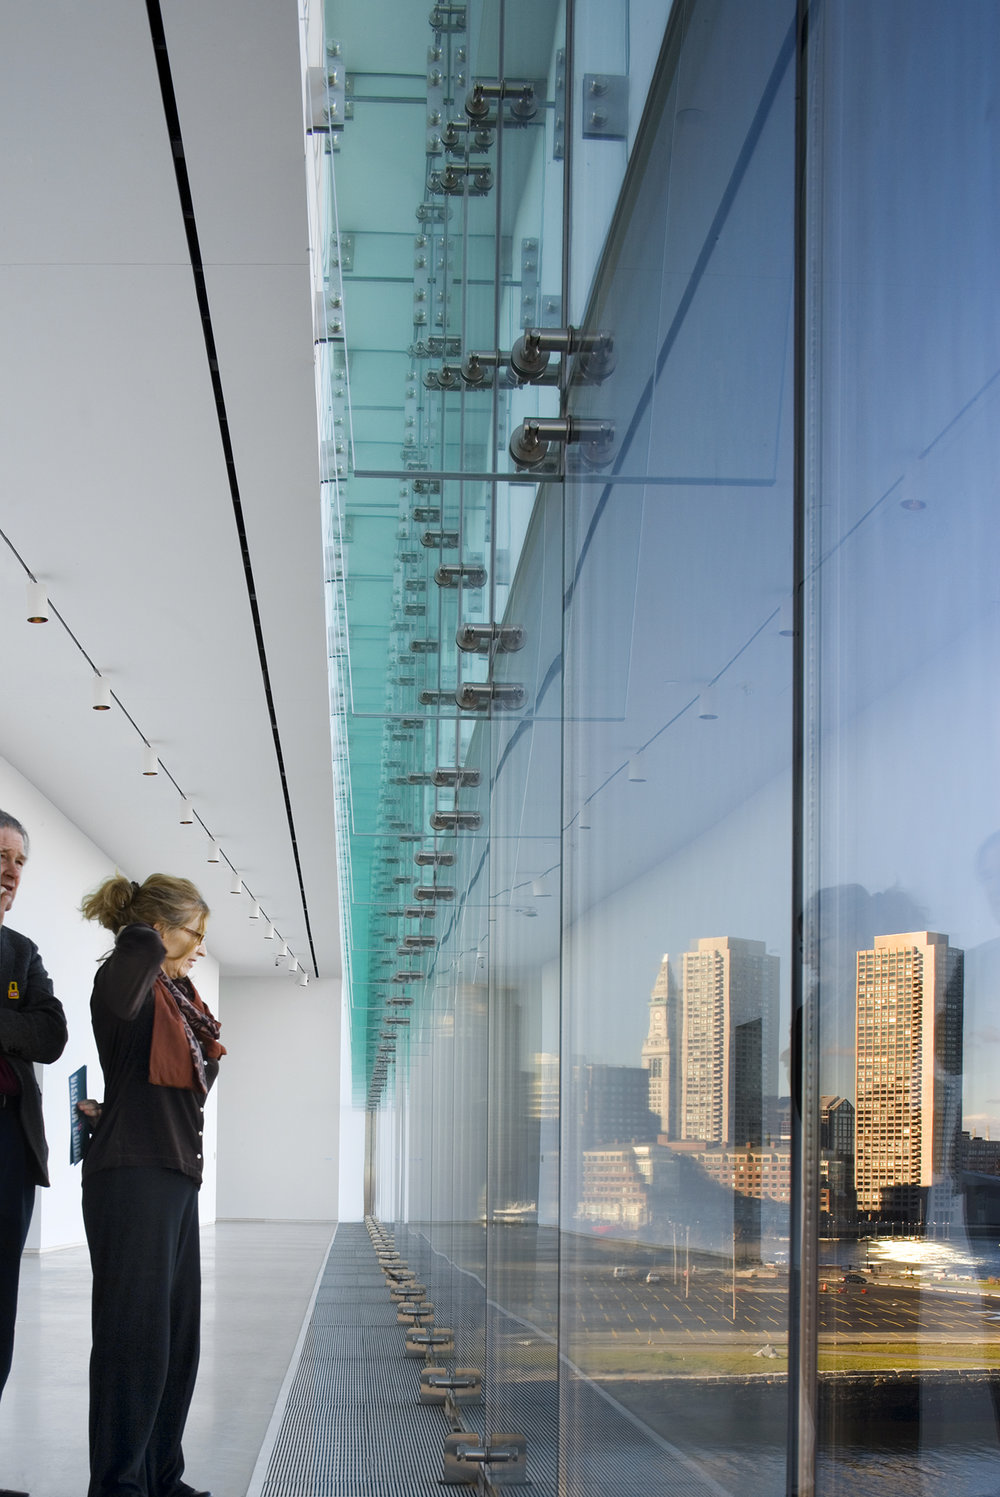 diller scofidio + renfro | institute of contemporary art | boston usa